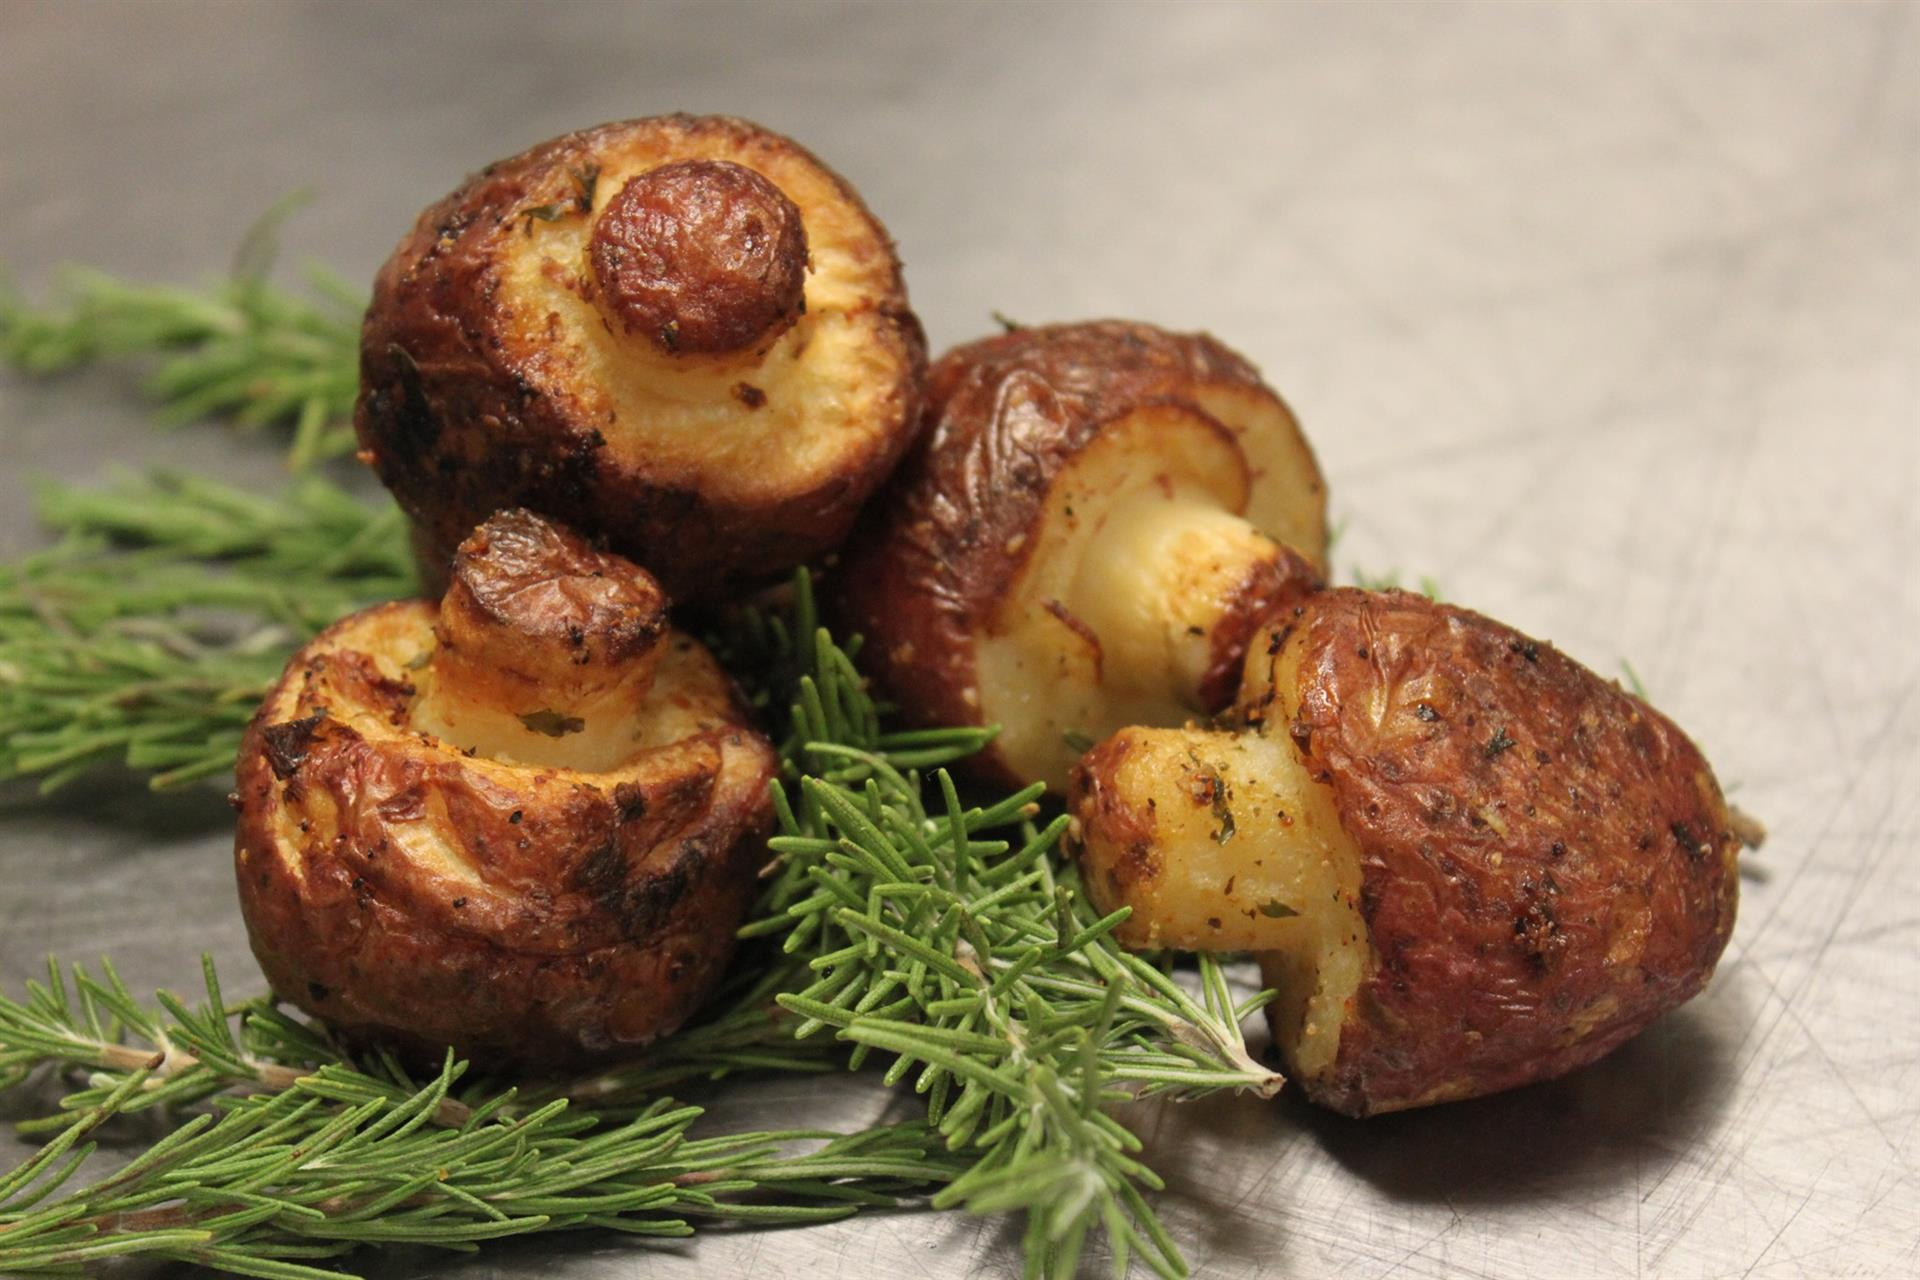 roasted mushrooms with rosemary